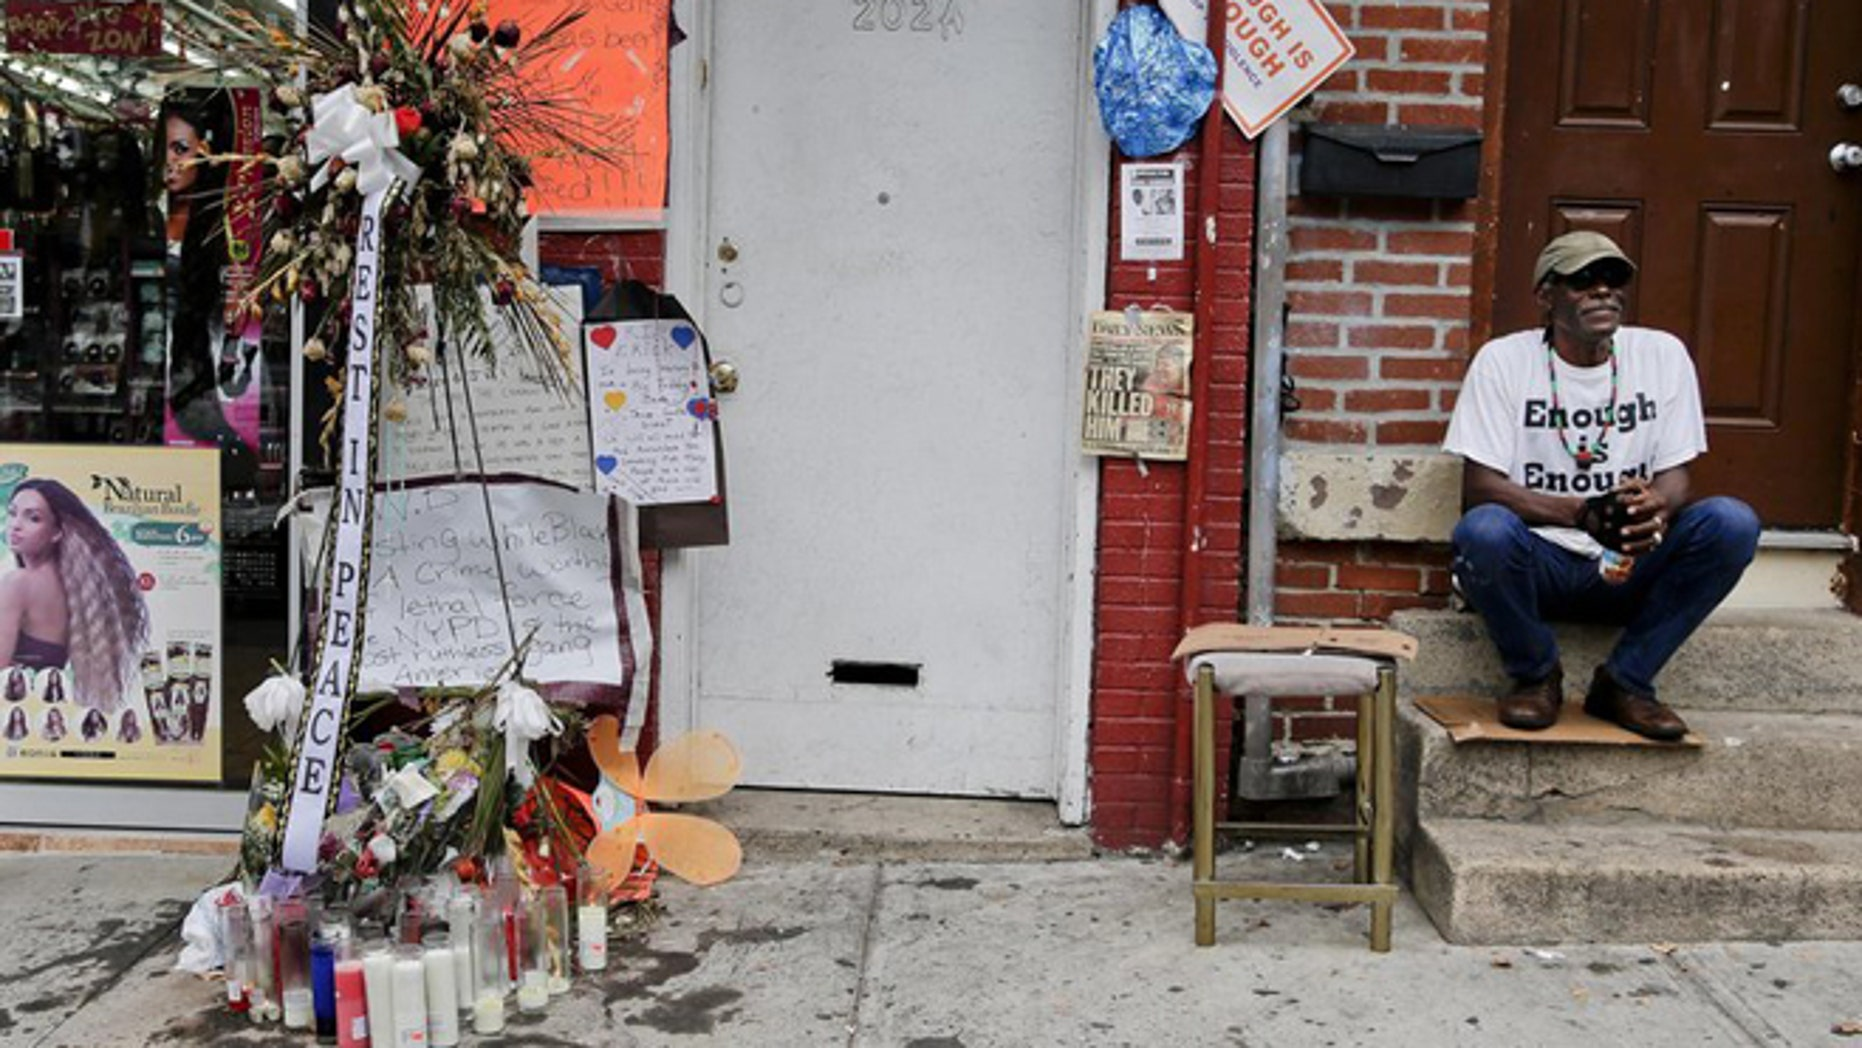 FILE: Doug Brinson sits on a stoop next to a makeshift memorial for Eric Garner in Staten Island, N.Y. Garner died after he was put in a chokehold by police officers while being arrested at the site for selling untaxed loose cigarettes. His death has been ruled a homicide.